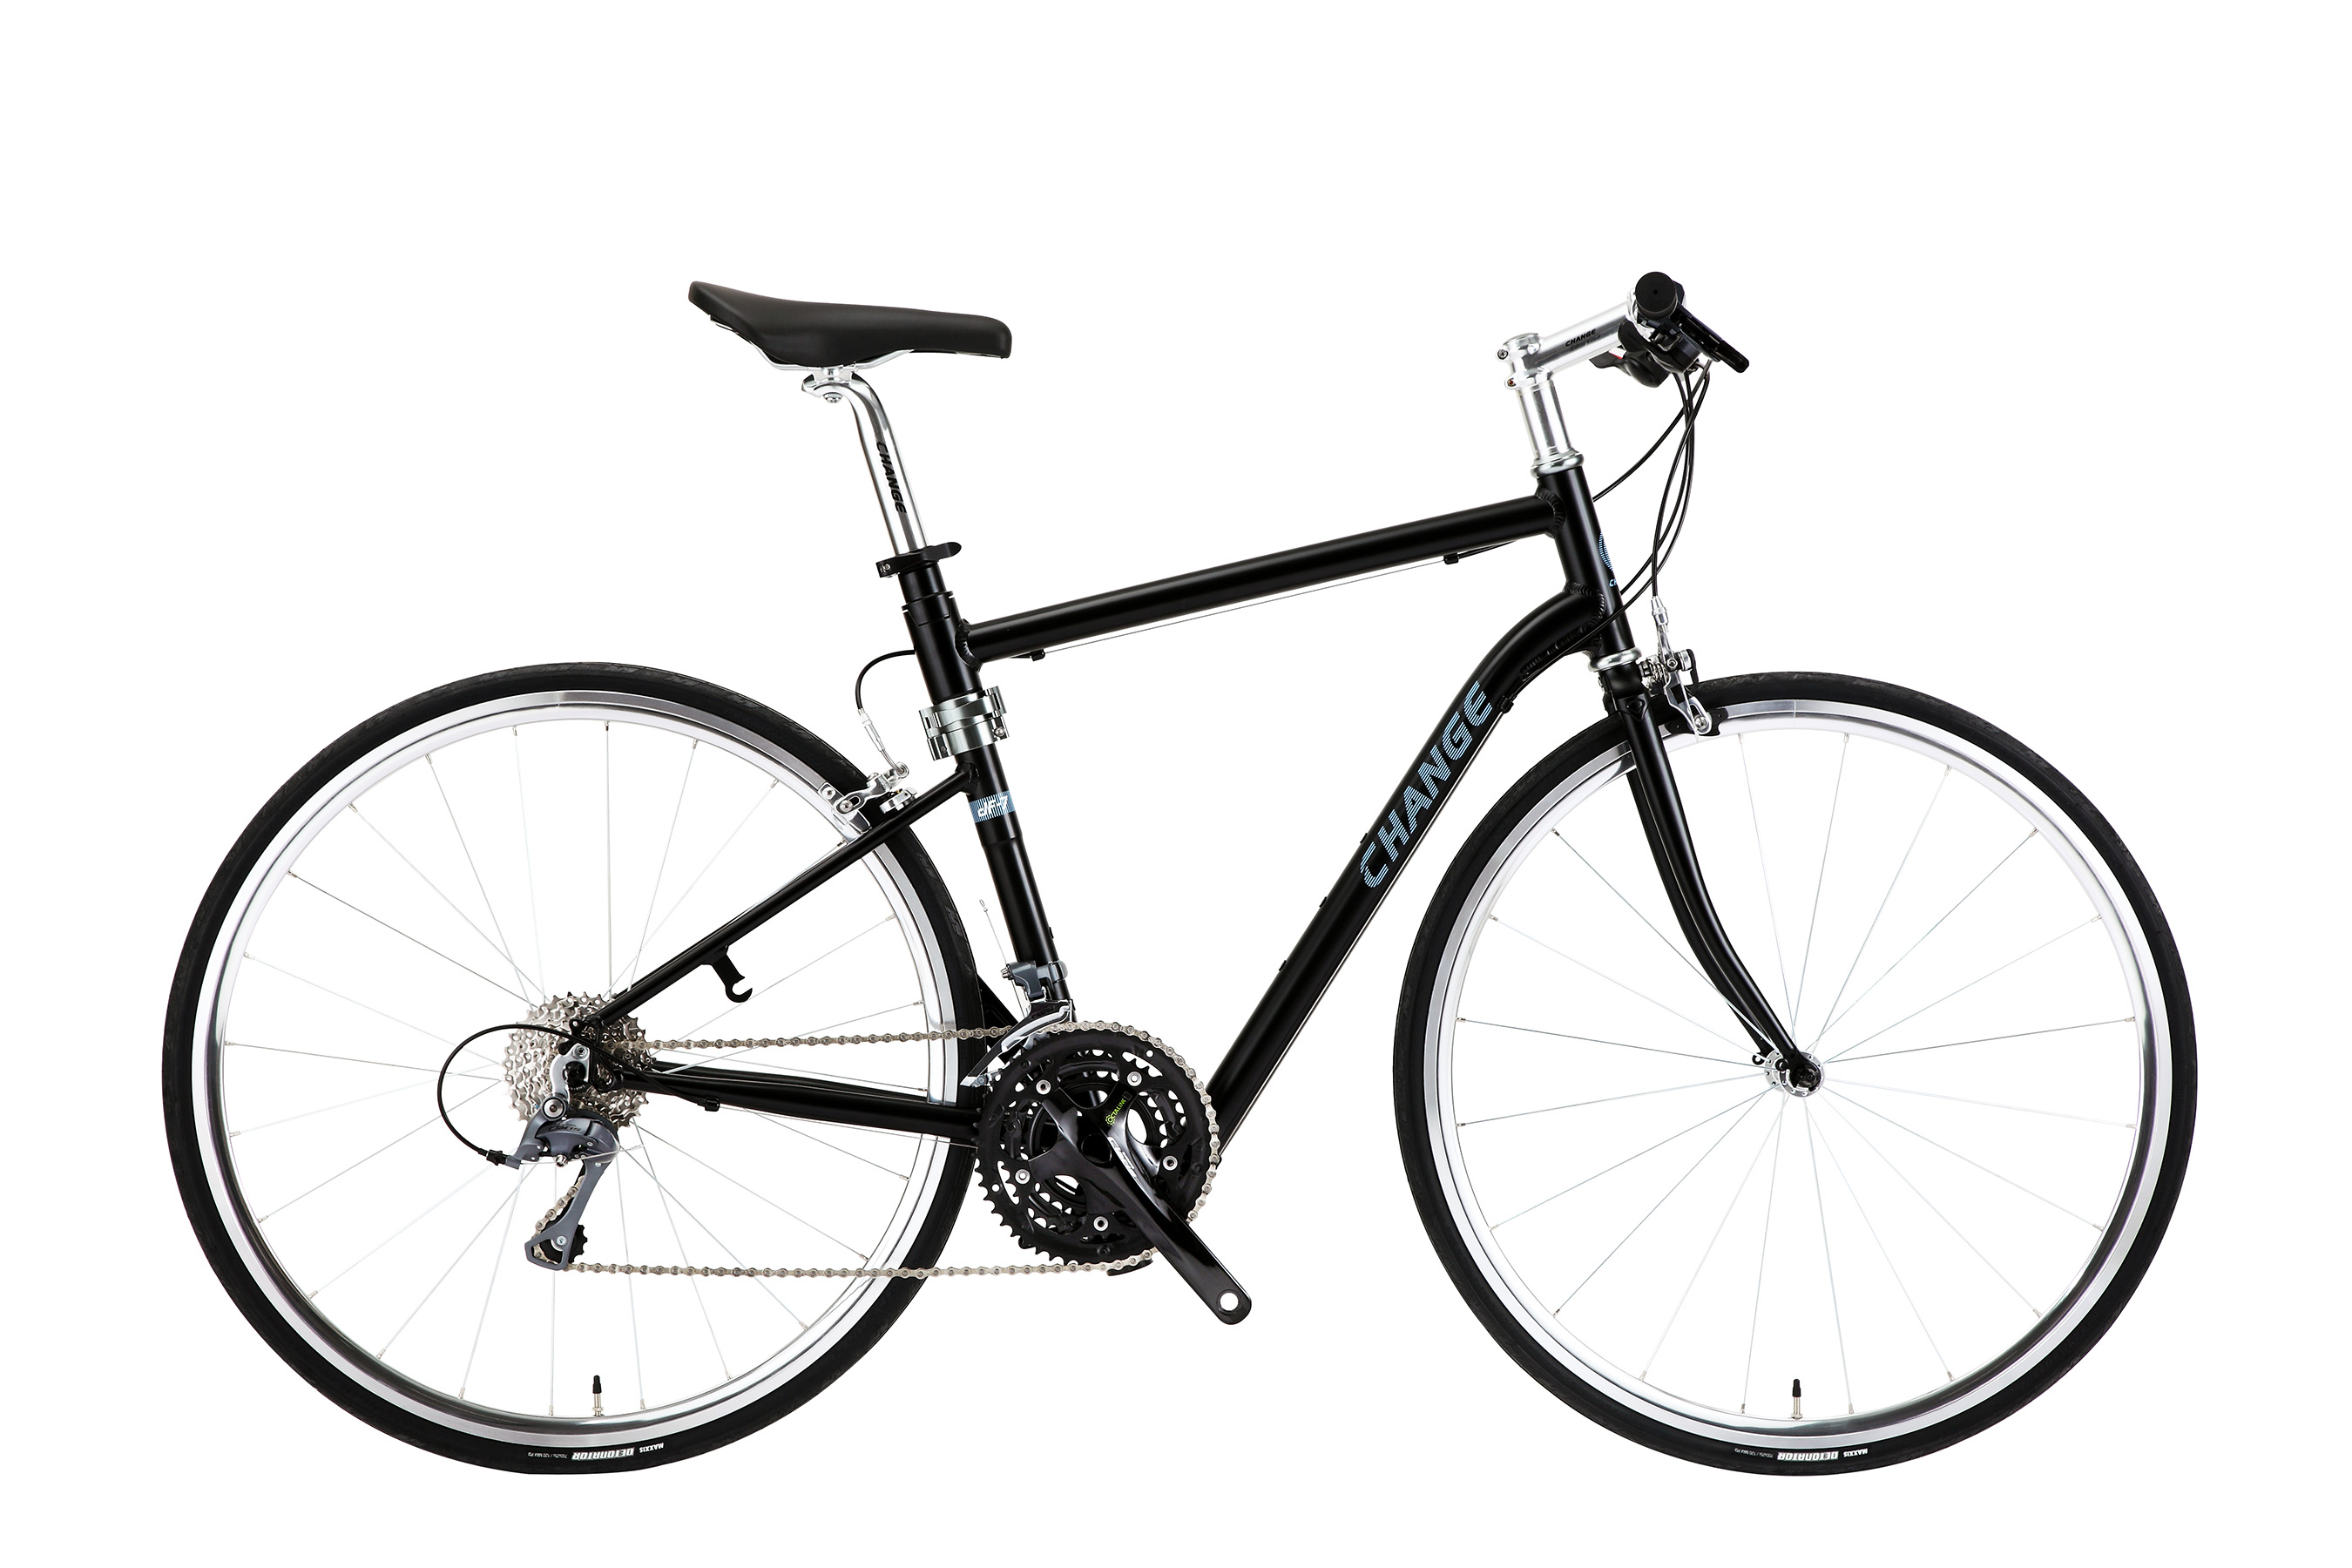 CHANGE Bike DF-702: The ultimate commuting bike.